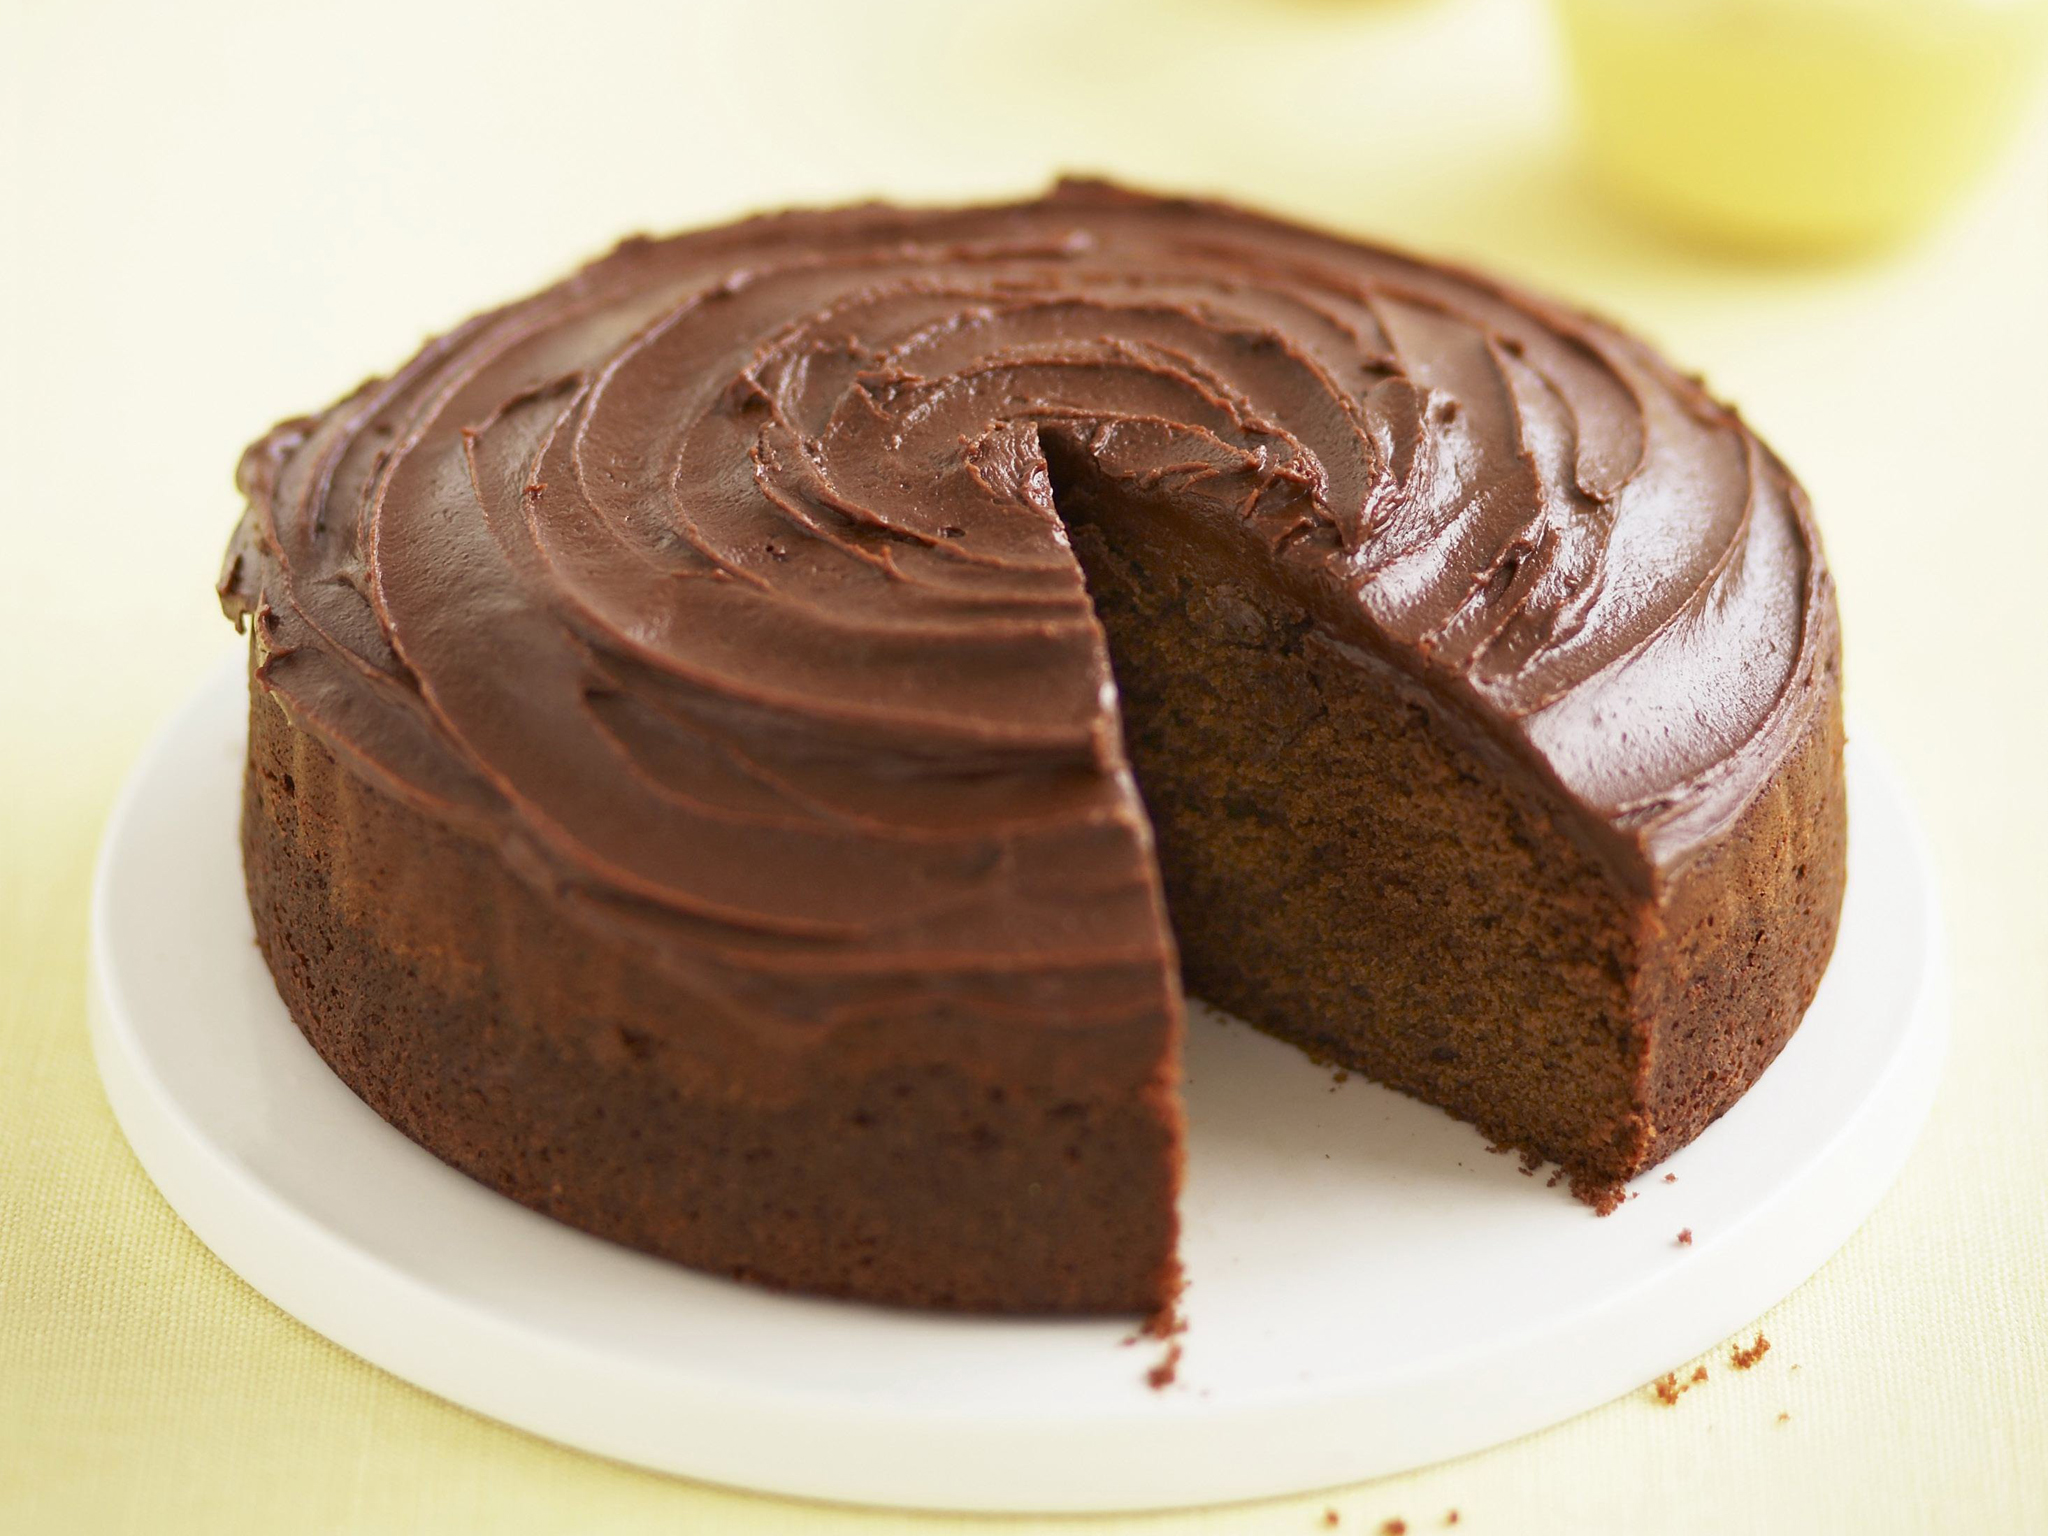 Chocolate Cake Recipe Hershey